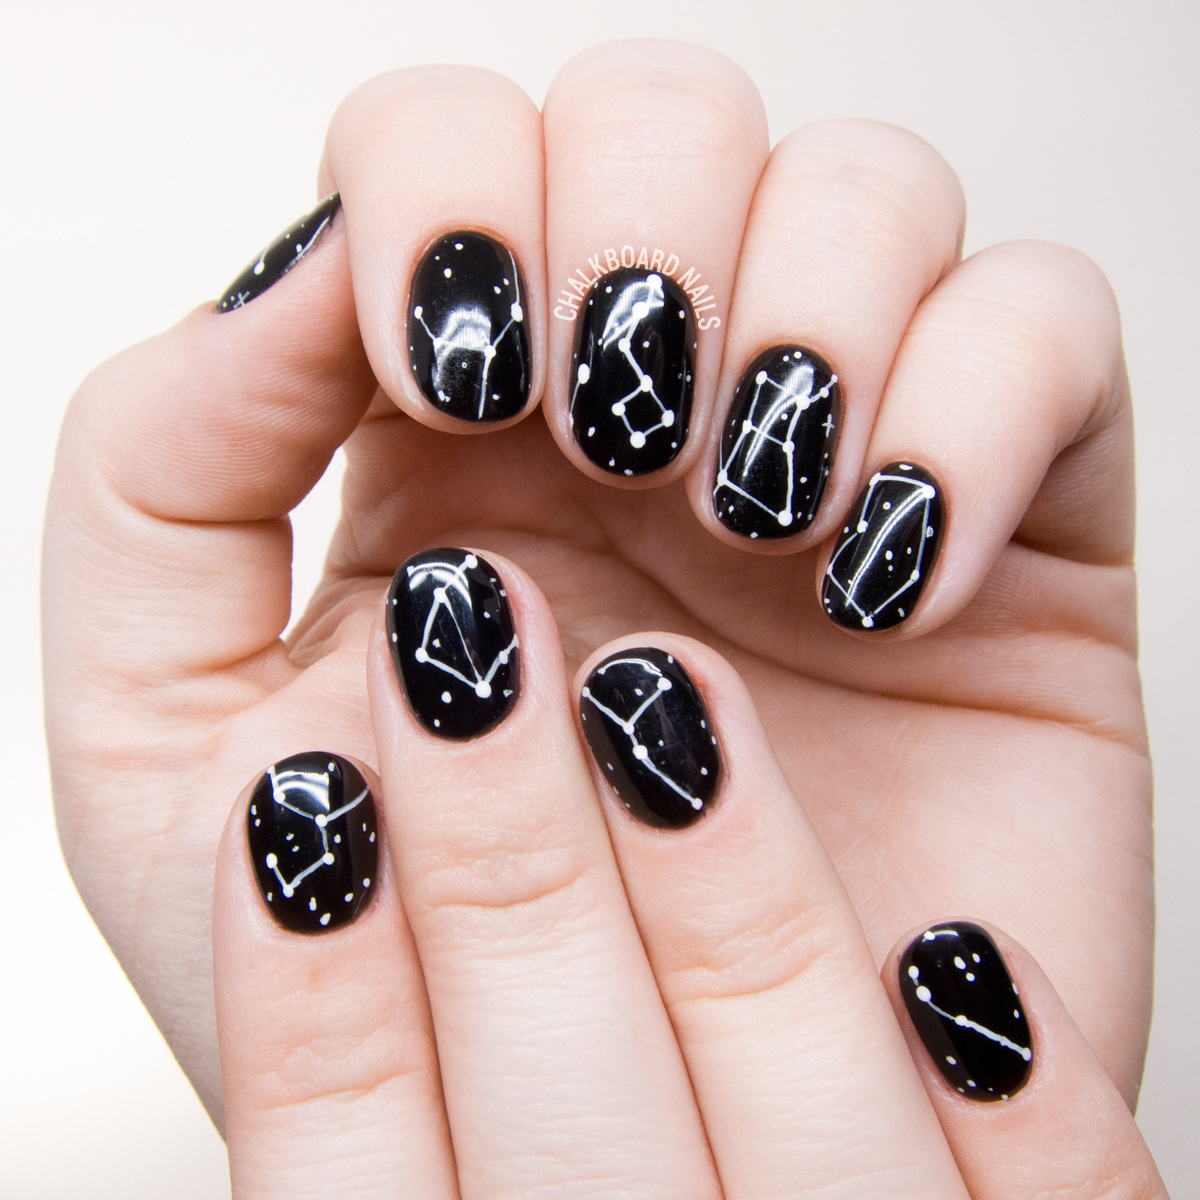 Simple Constellation Nail Art | Chalkboard Nails | Nail ...